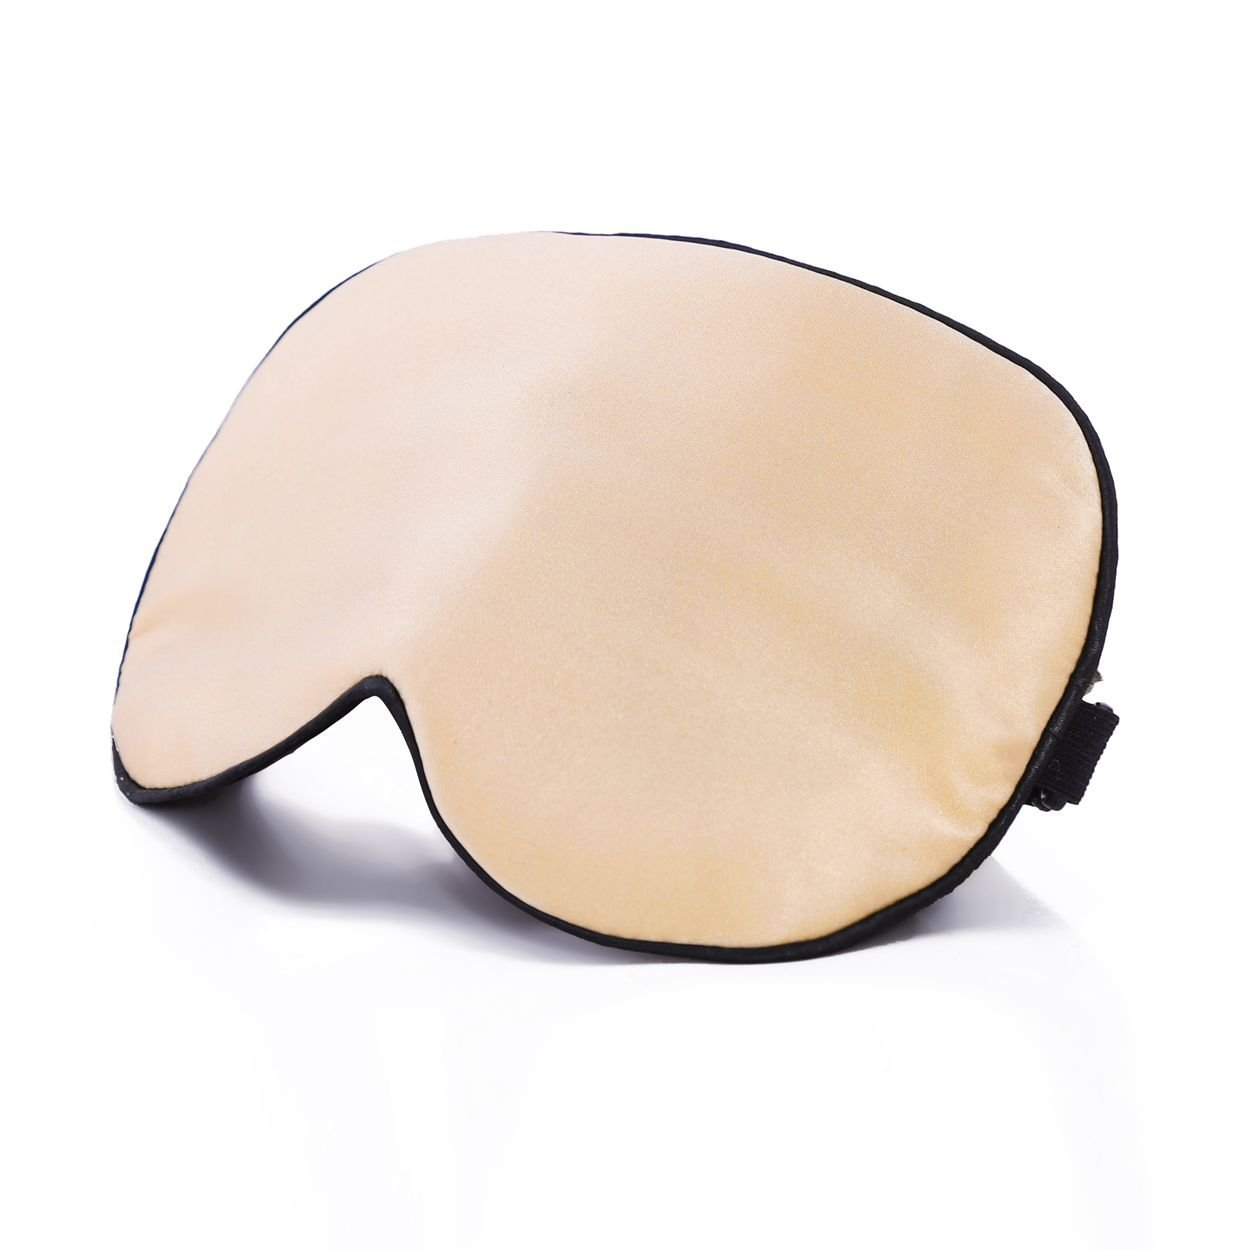 Ethereal Lomoer 100% Natural Silk Sleep Mask & Blindfold with Adjustable Comfortable Strap, Super-Smooth for Nap, Travel, Full Night Sleep (Champagne)